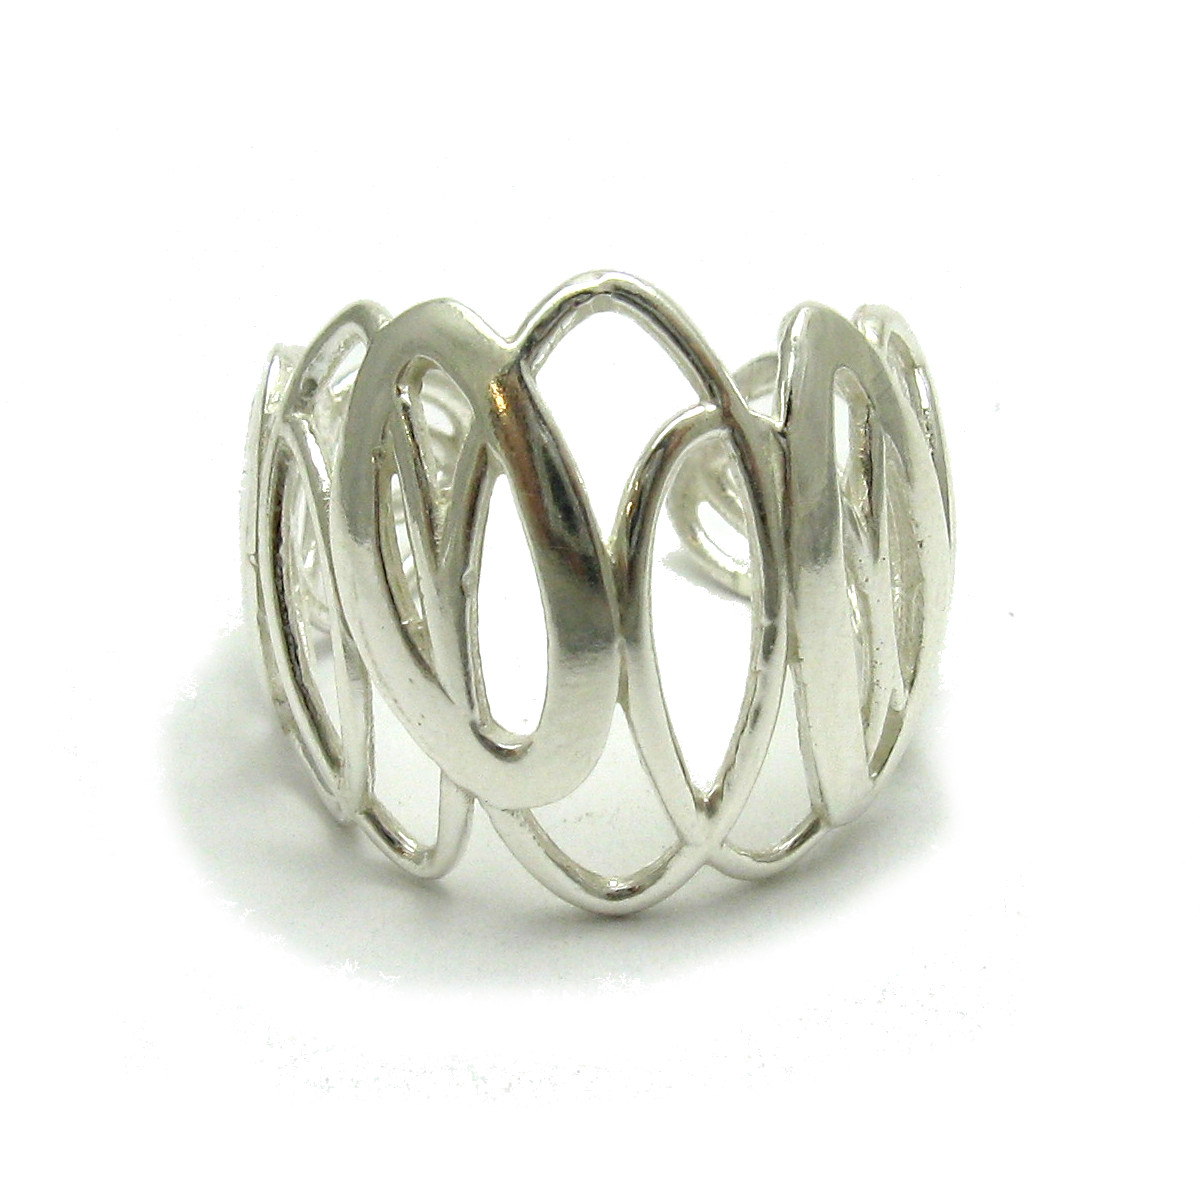 Silver ring - R001641